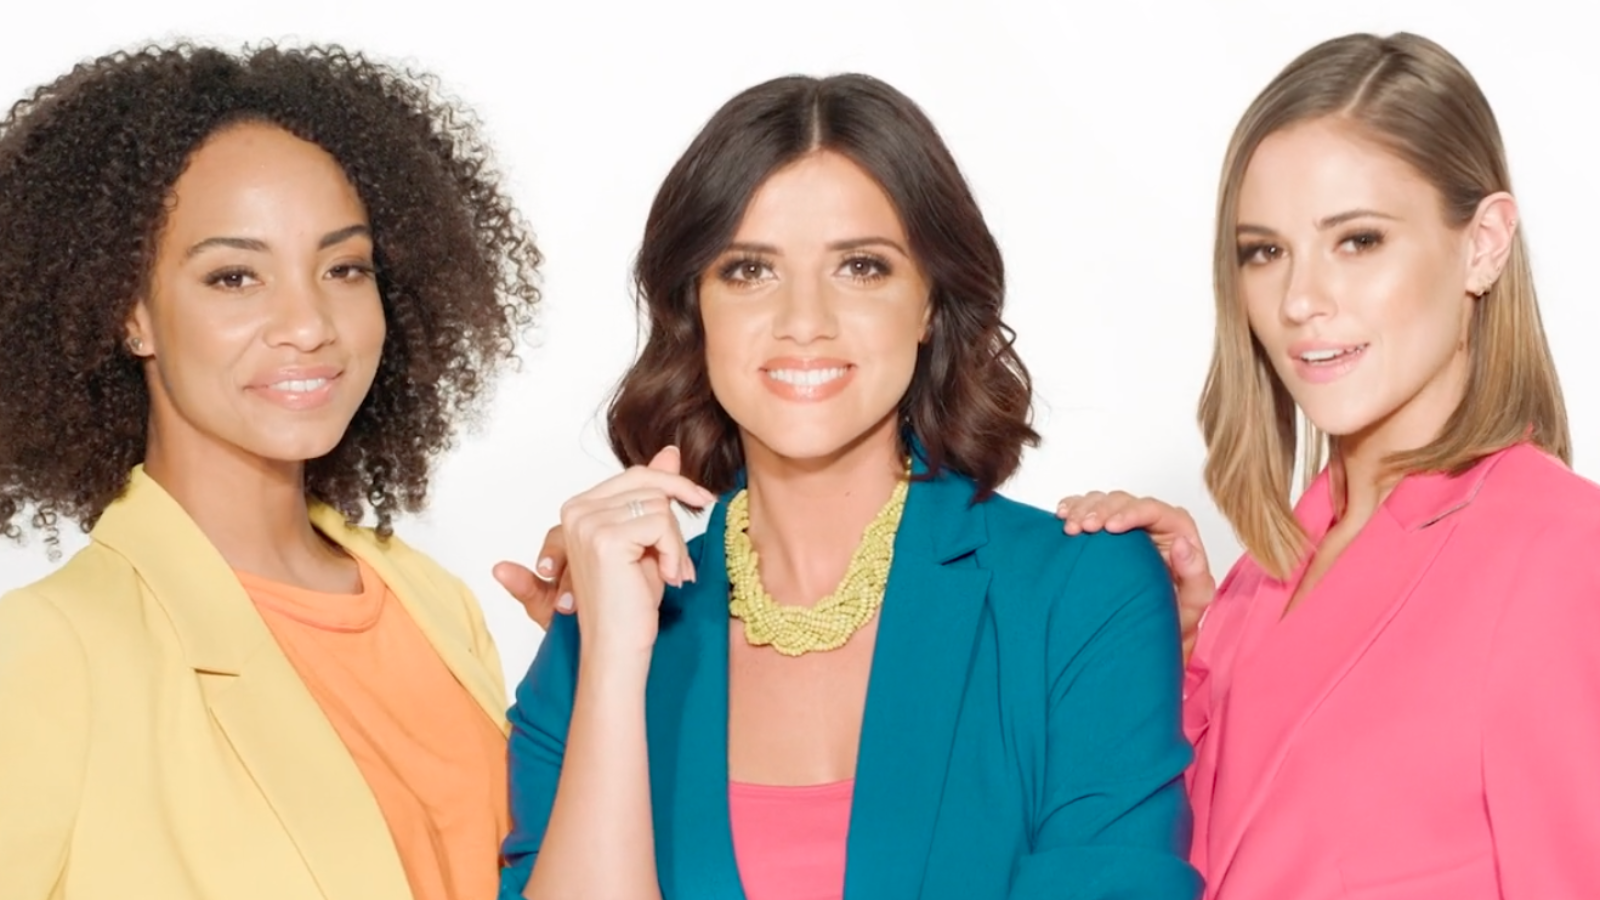 Watch our latest TV ad featuring Lucy Mecklenburgh